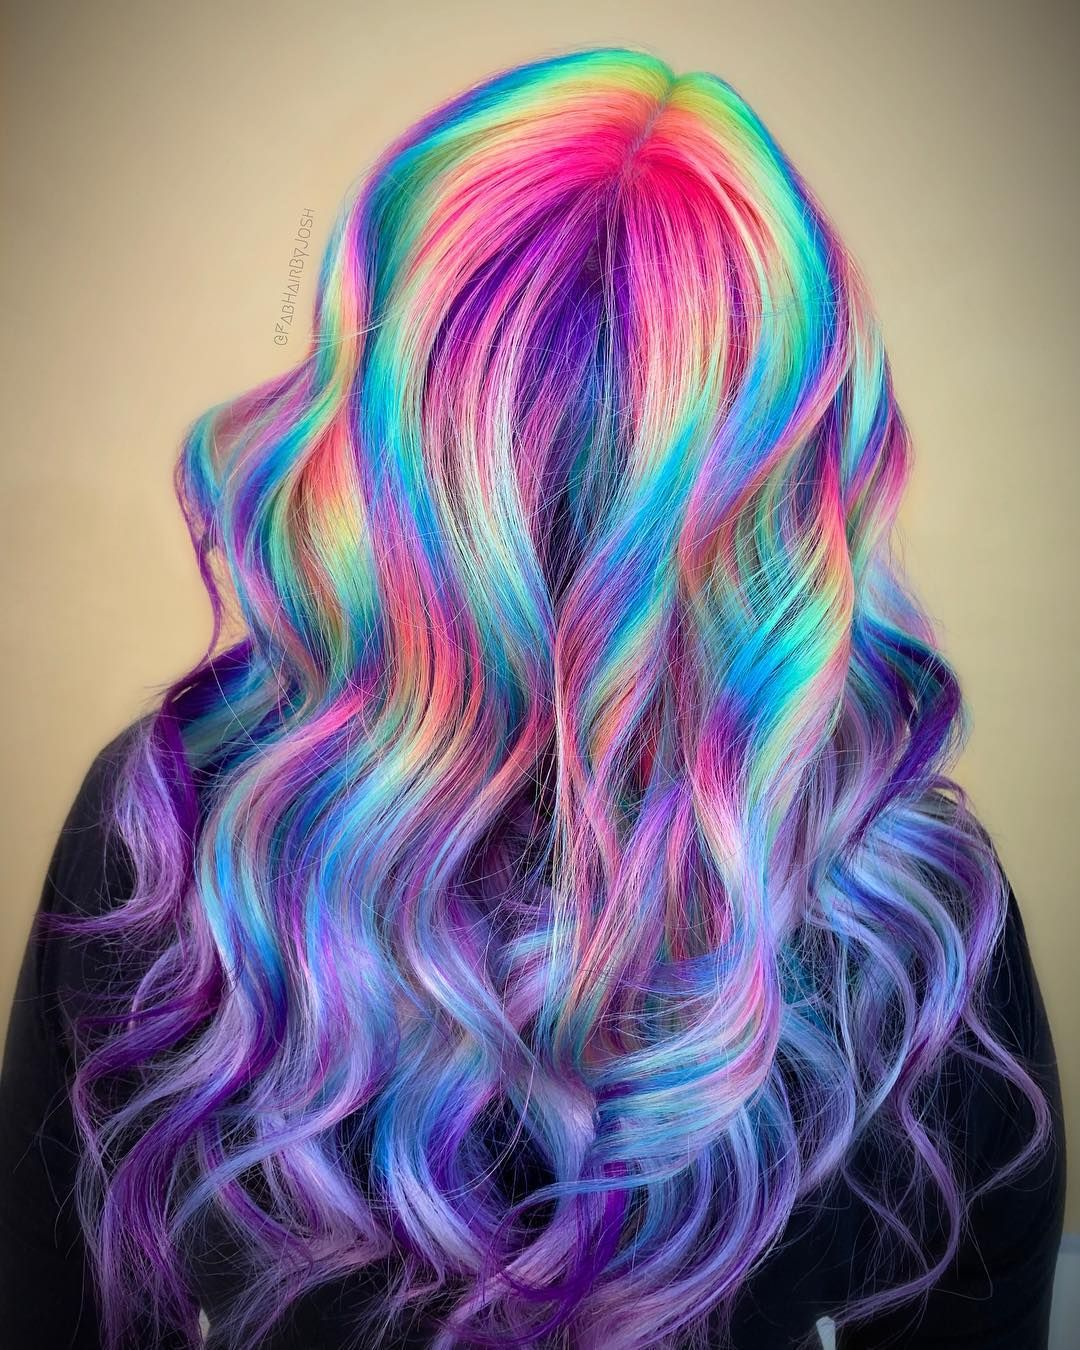 Pin on Hair Styles, Cuts, and Colors